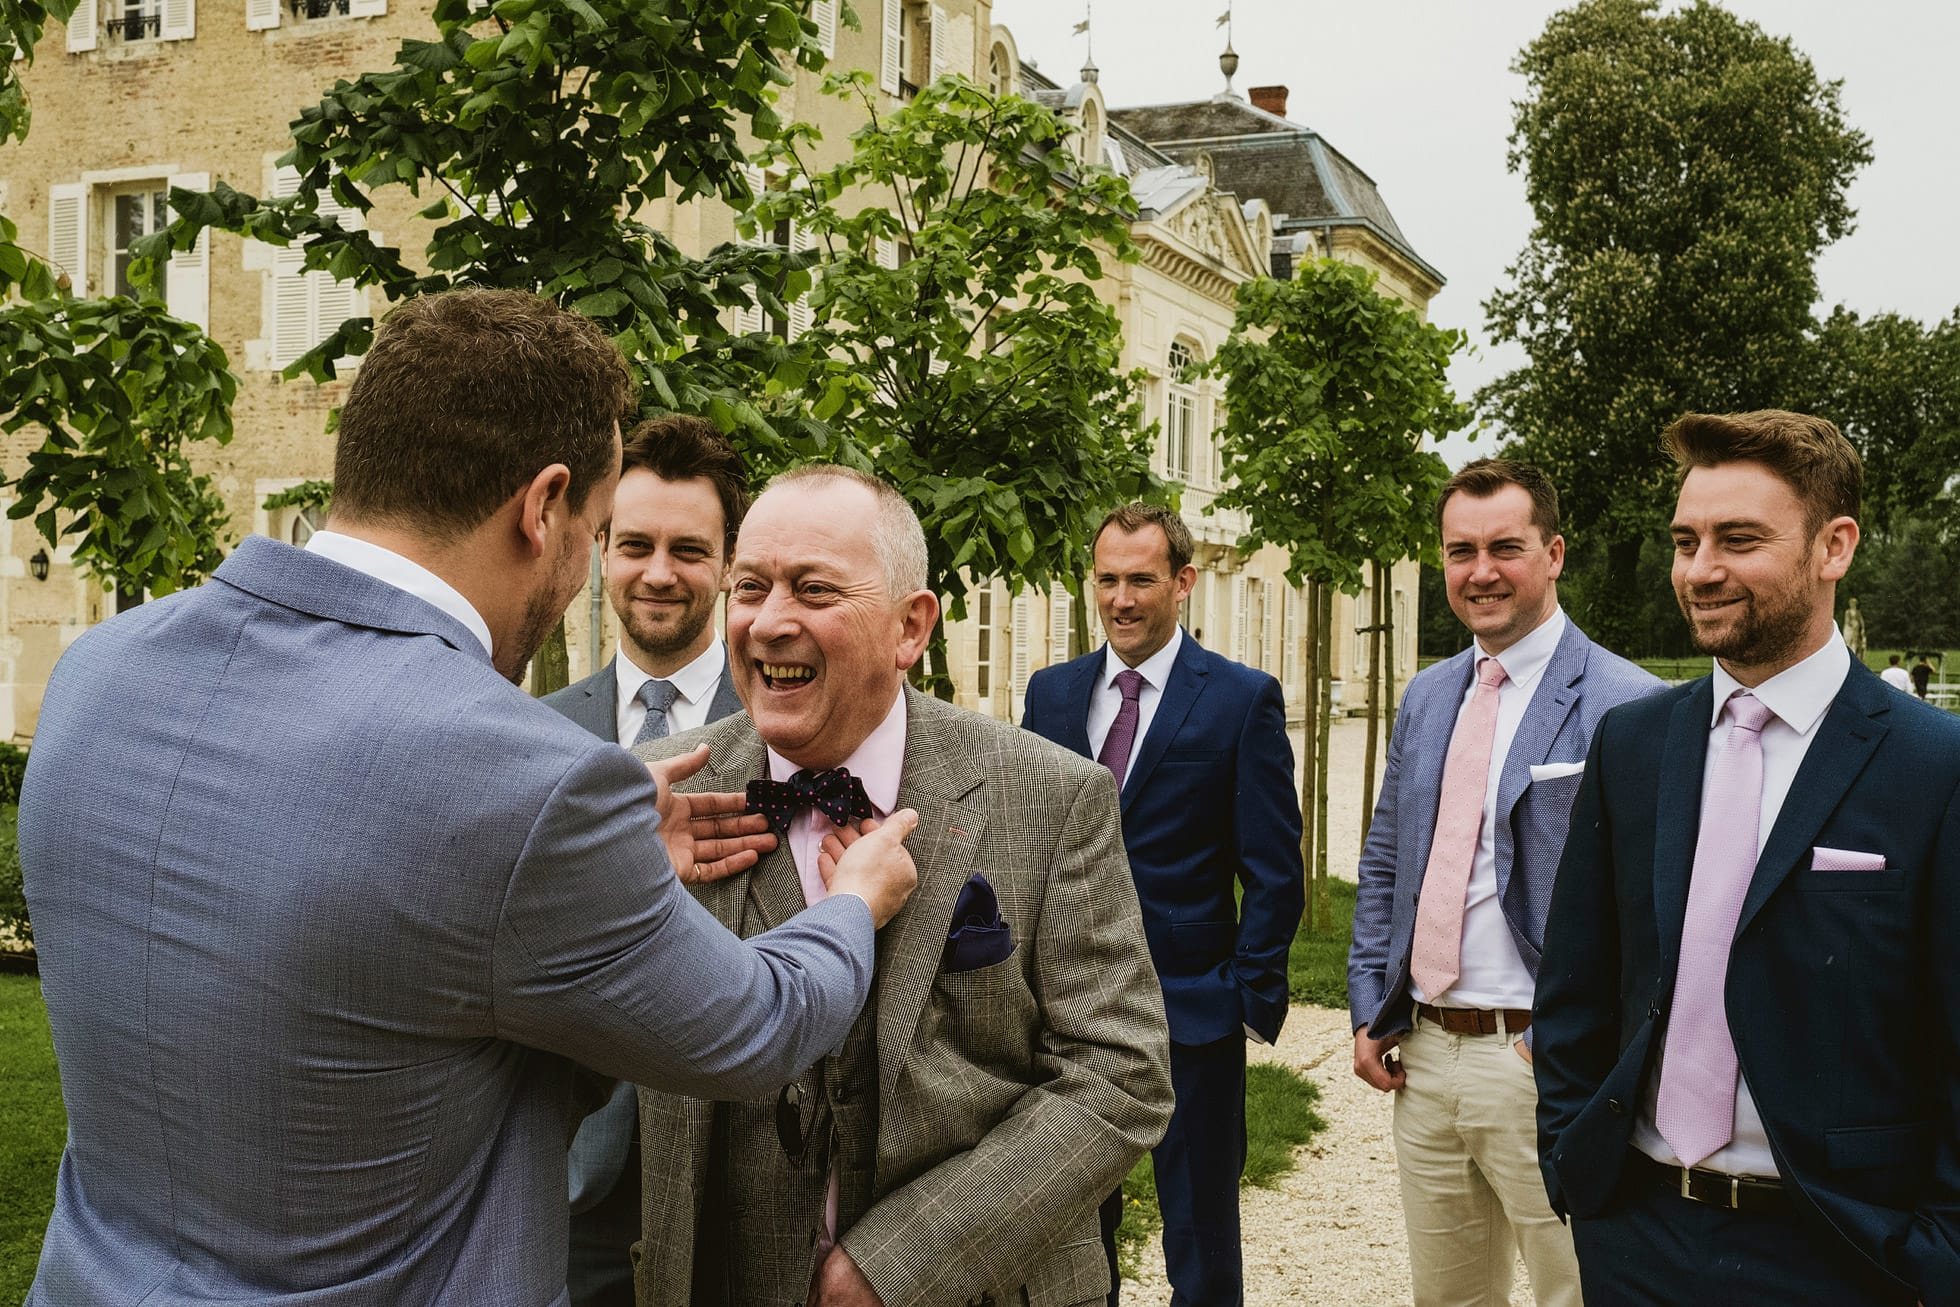 chateau de varenne wedding ceremony